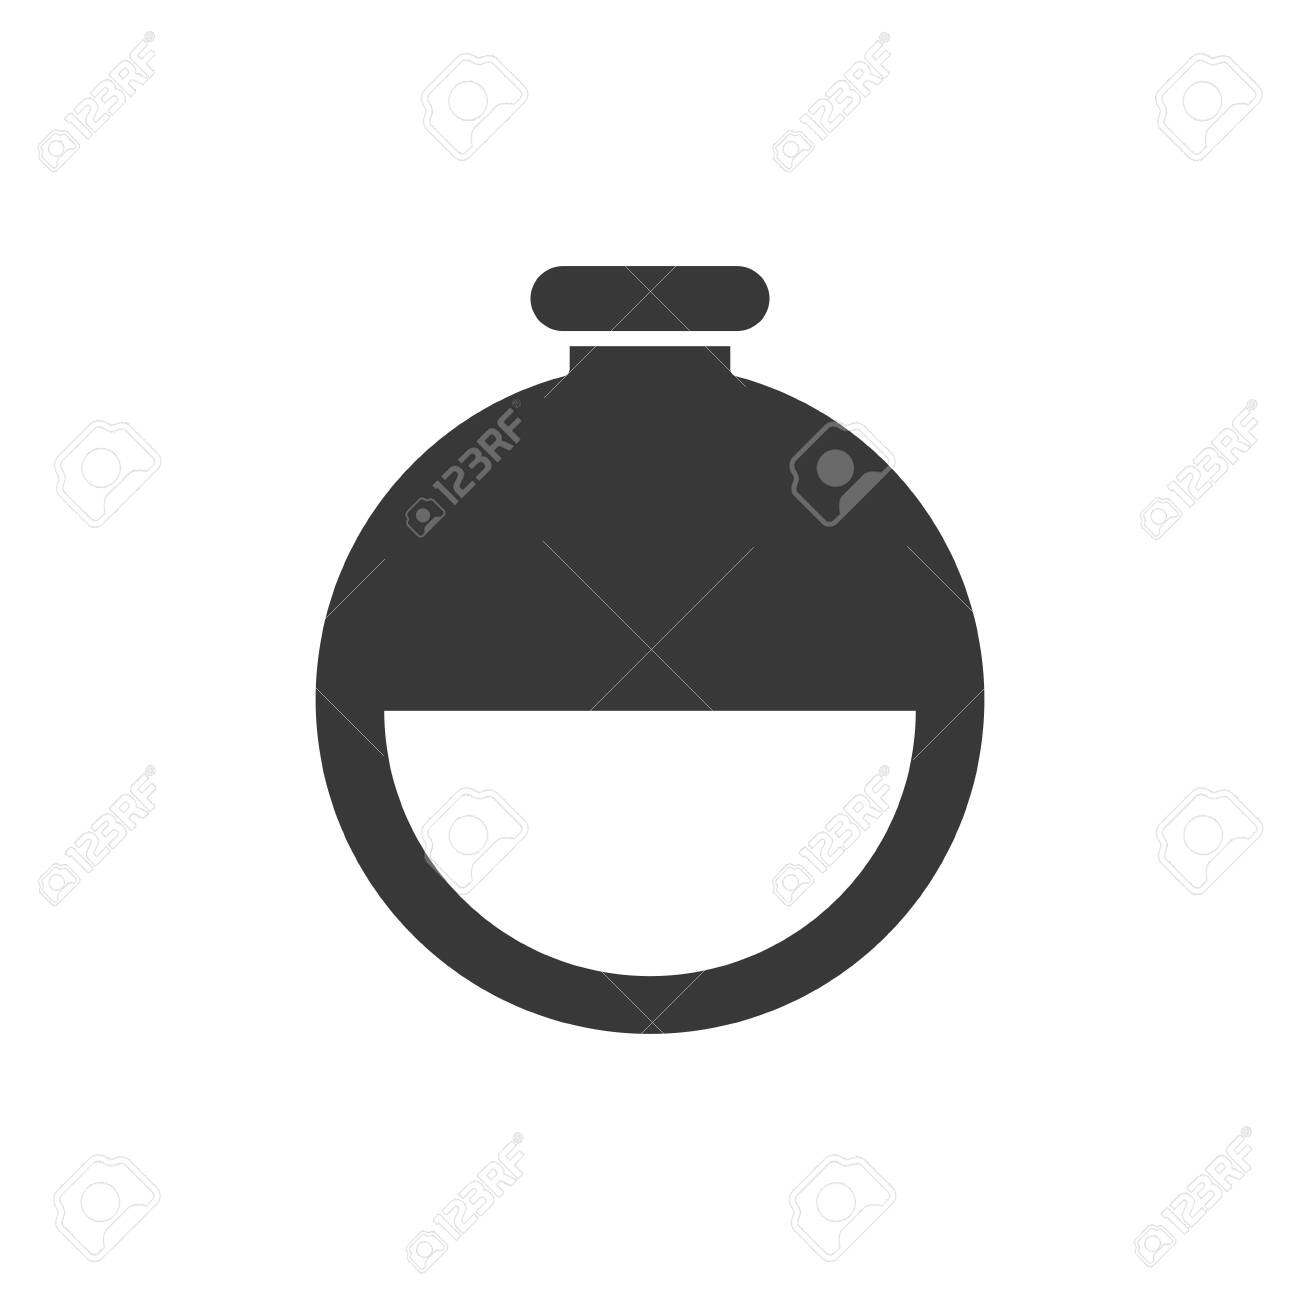 Flask silhouette style icon design, Chemistry science laboratory research technology biology equipment and test theme Vector illustration - 140372824